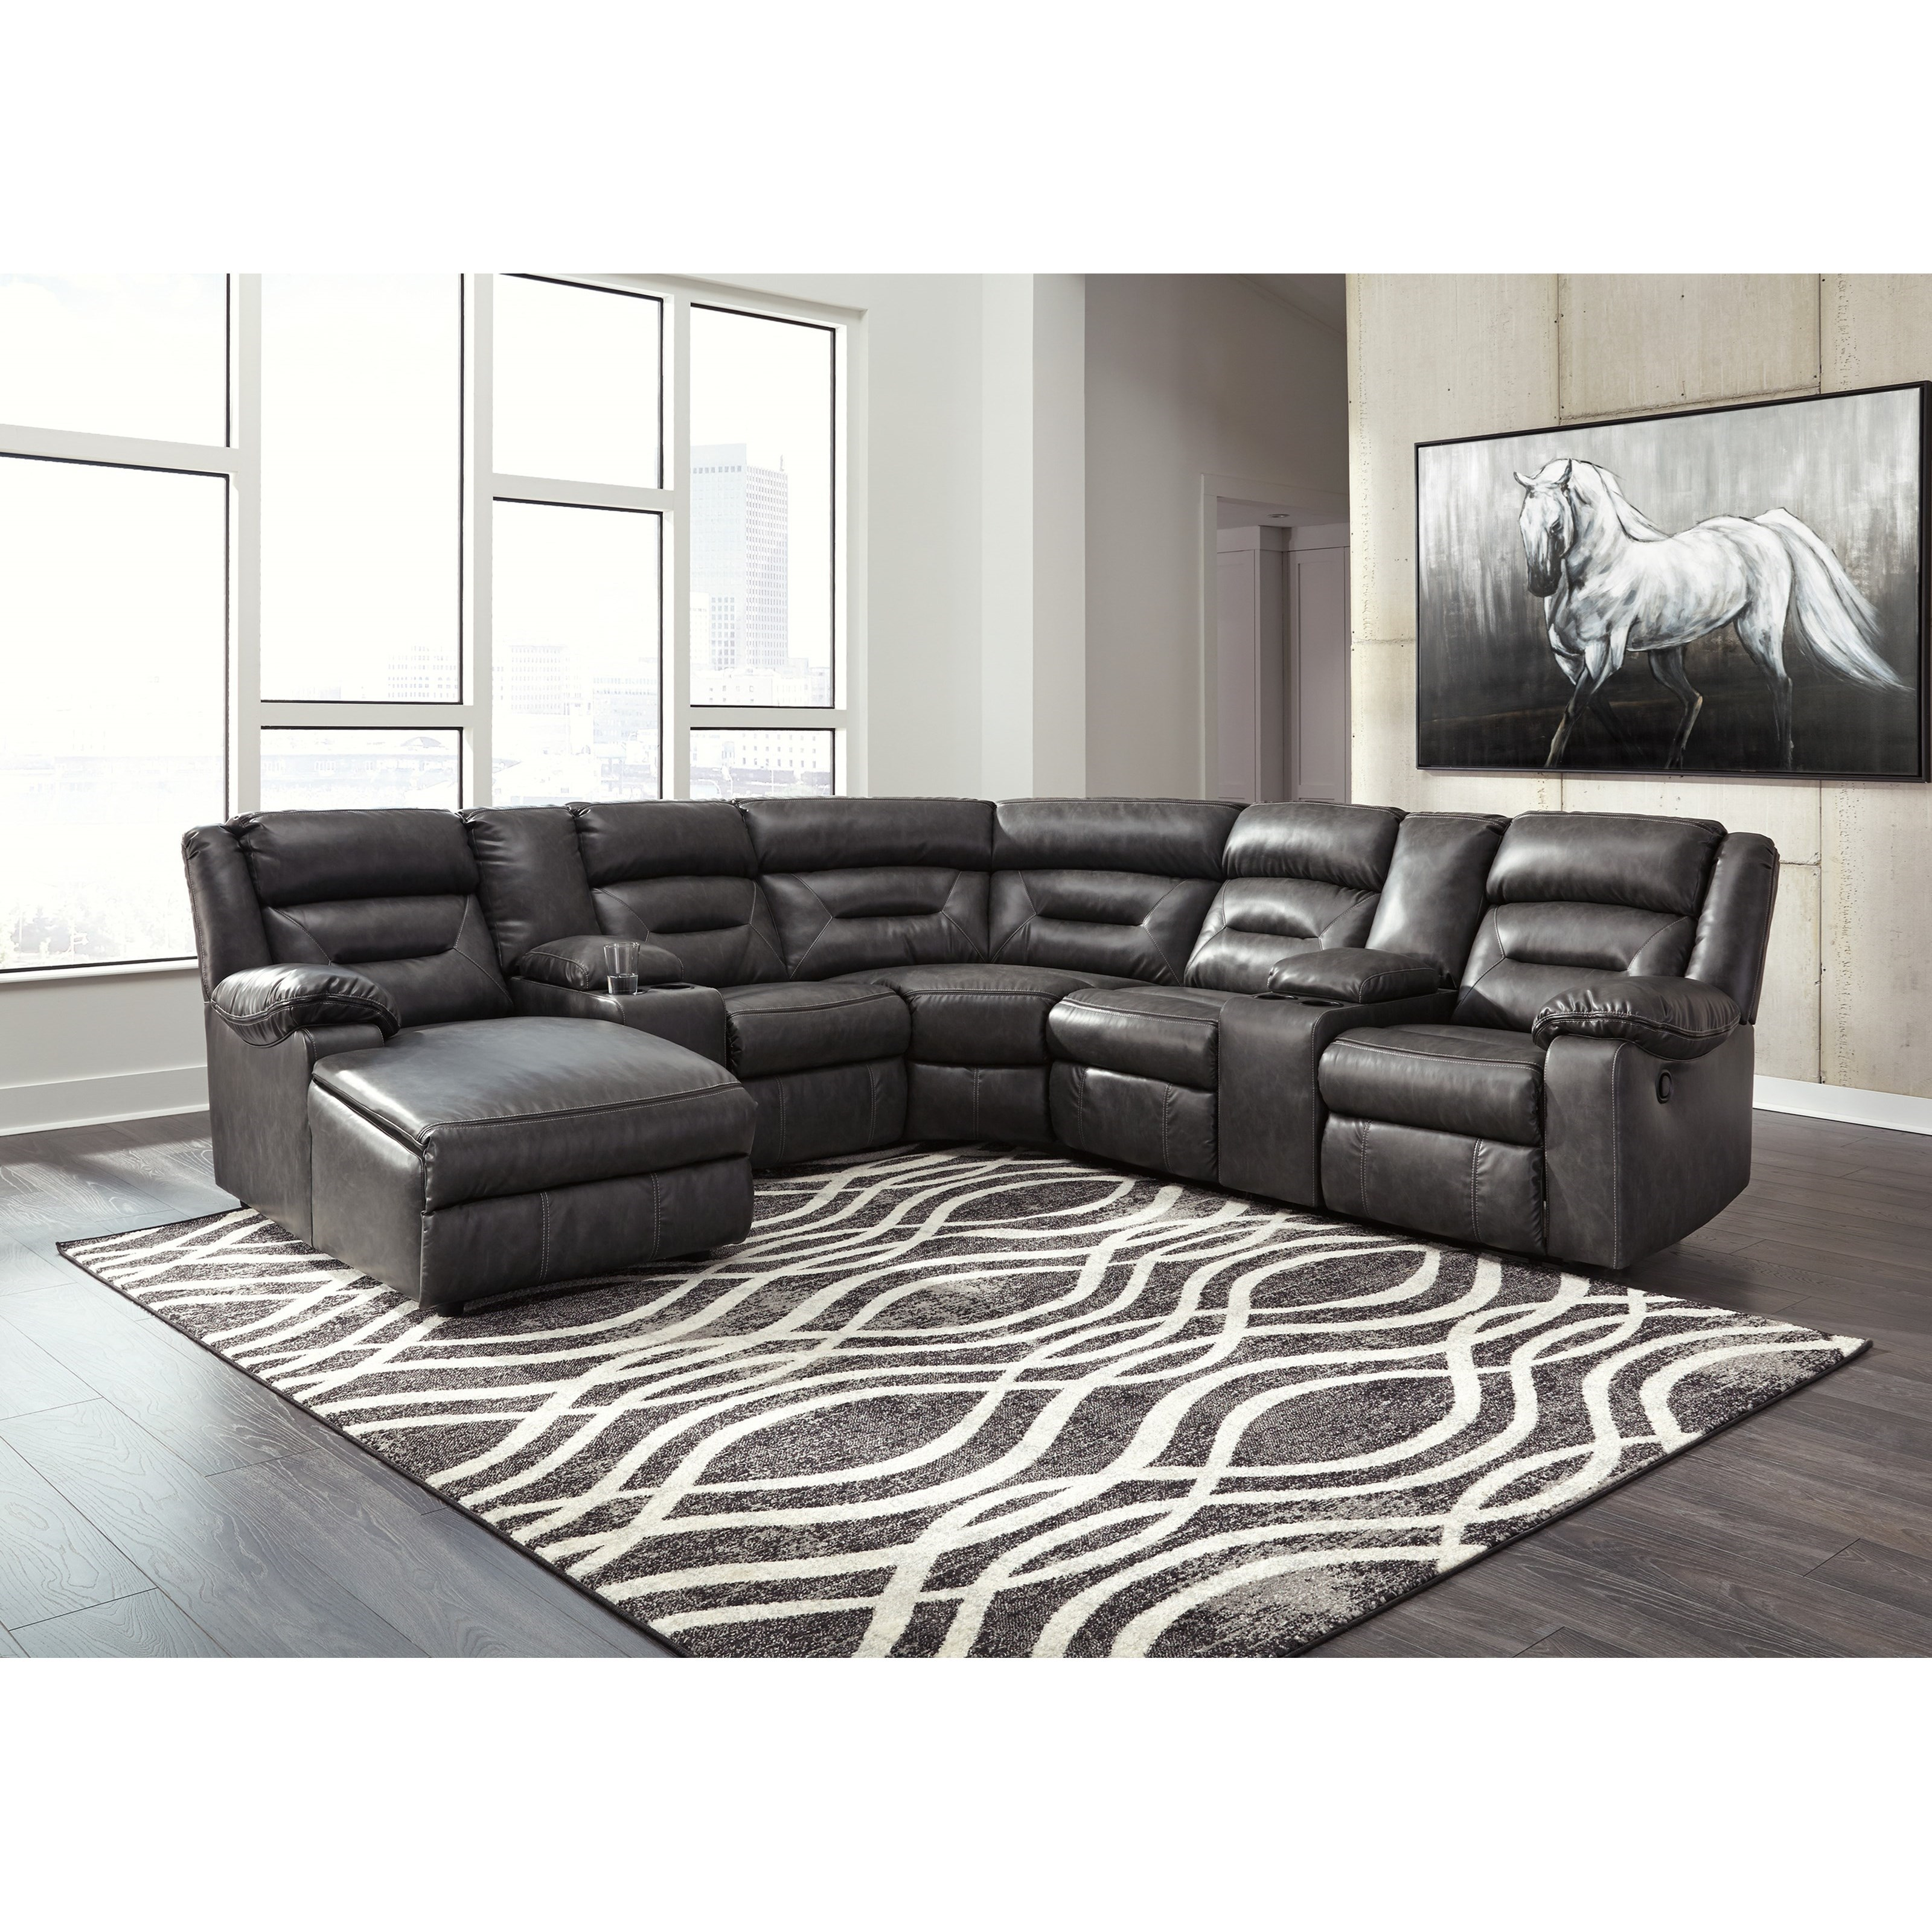 signature design by ashley coahoma 7 piece sectional with storage consoles household furniture. Black Bedroom Furniture Sets. Home Design Ideas